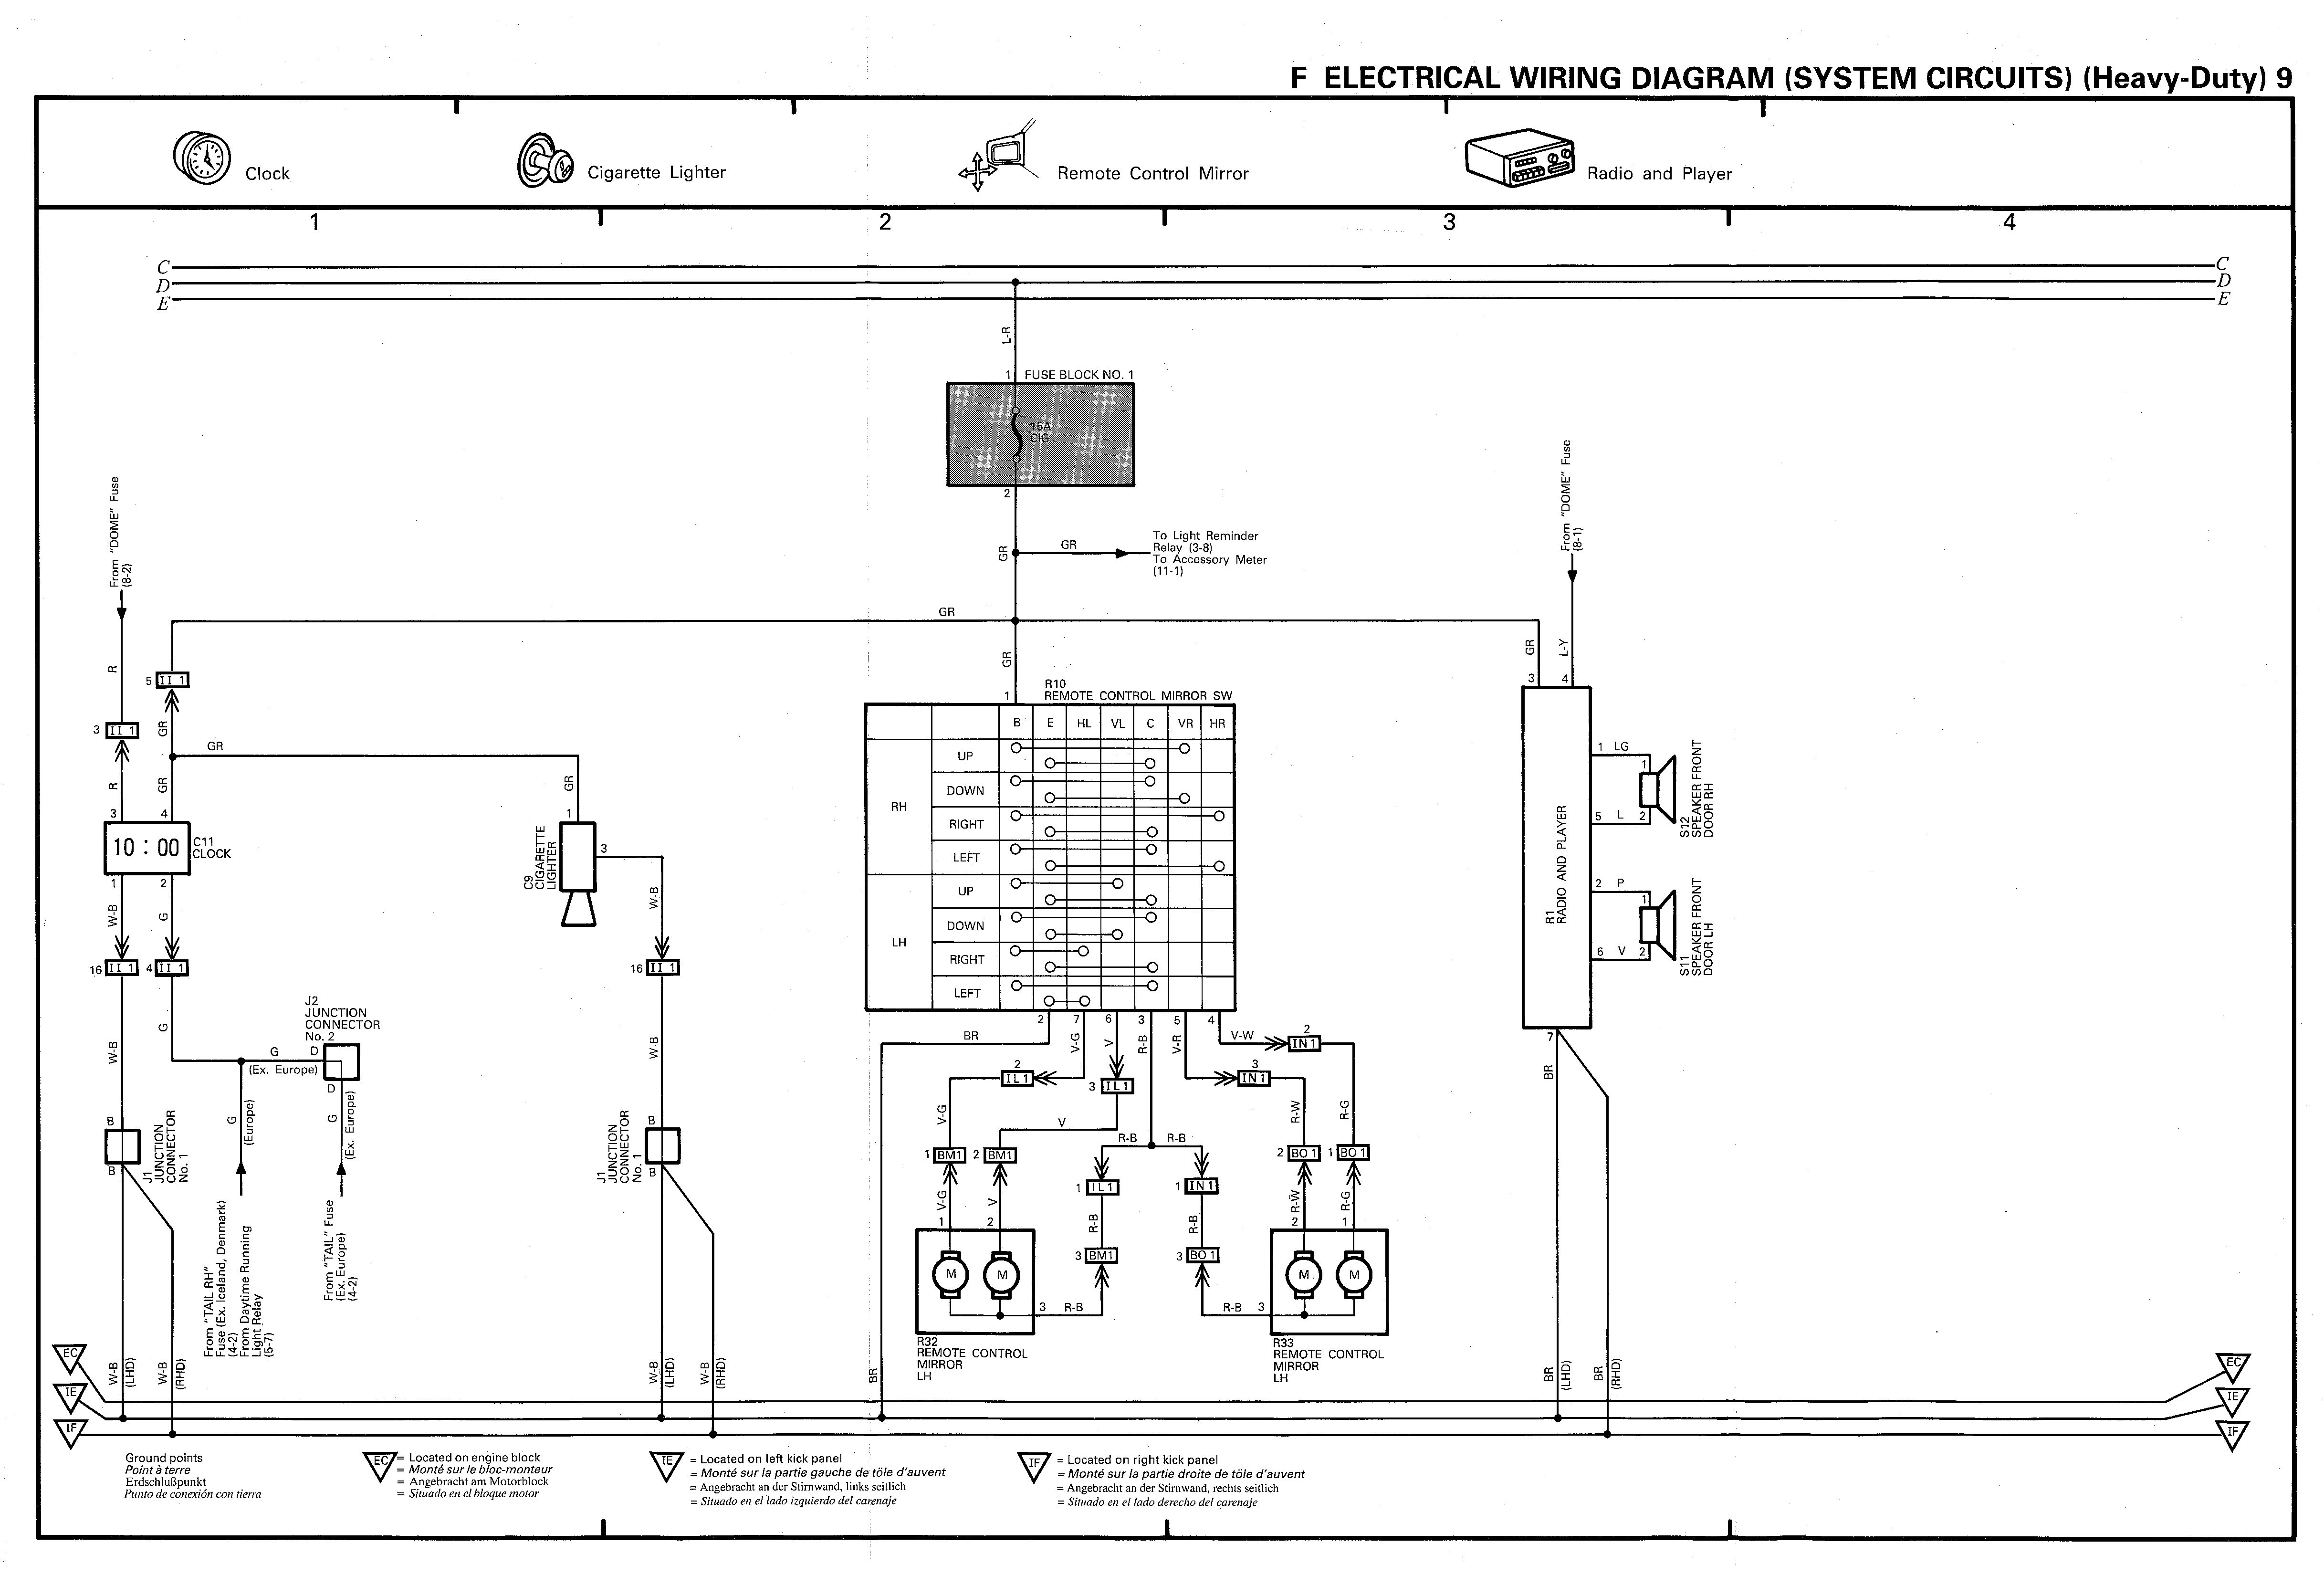 04 Ford F 350 Ficm Wiring Diagram Best Electrical Schematic 68756 2004 Dually 2000 1969 F100 Harness Truck Diagrams